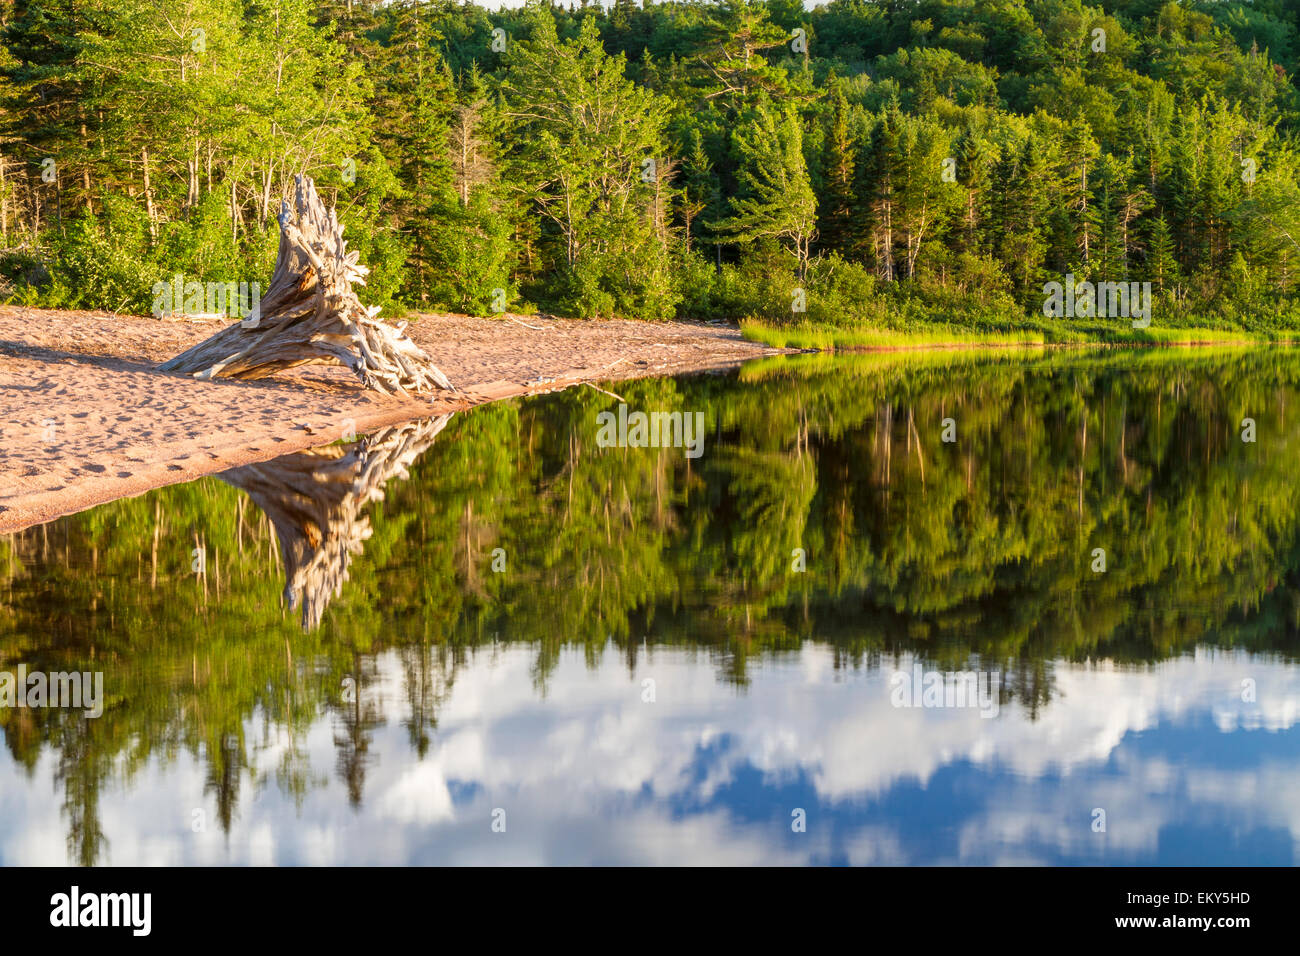 A forest reflected with a driftwood tree on the beach during golden hour at Warren Lake in Cape Breton Highlands - Stock Image